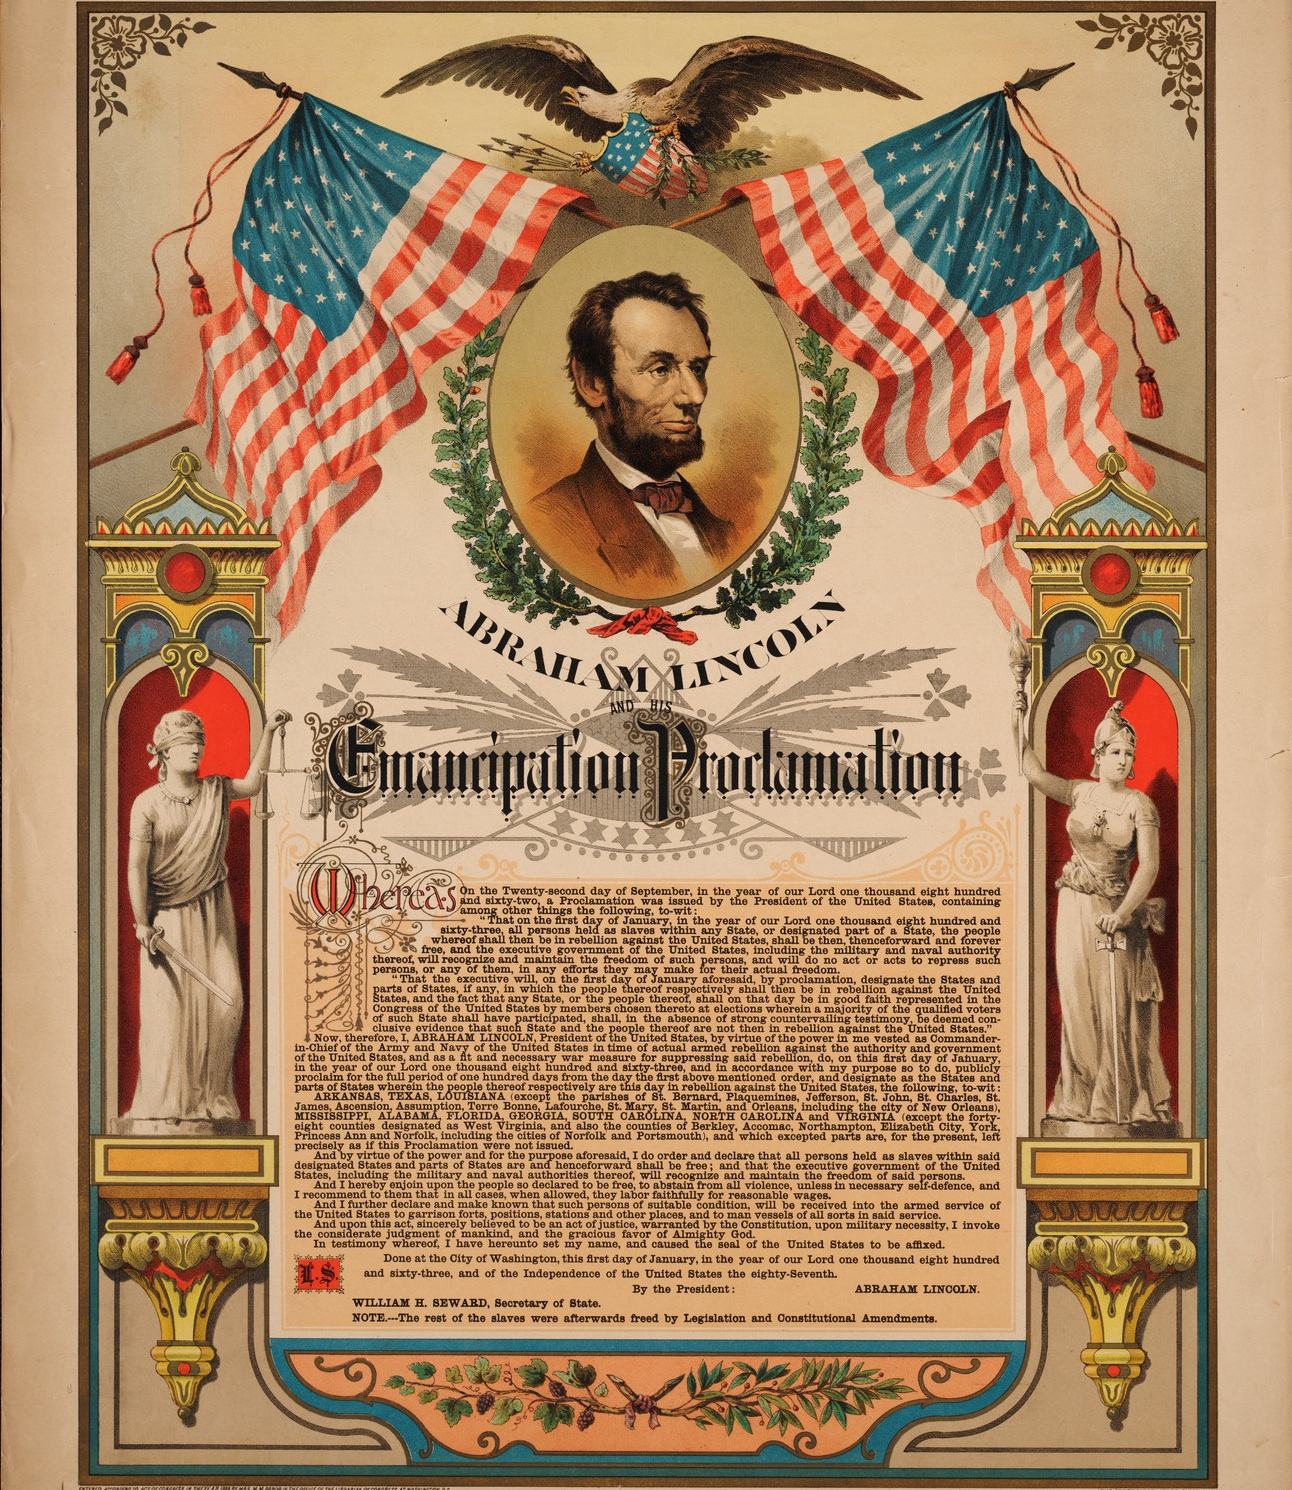 the controversies and impact of the emancipation proclamation in the unites states Advanced placement united states portfolios that require analysis of the societal impact of key appomattox, emancipation proclamation.